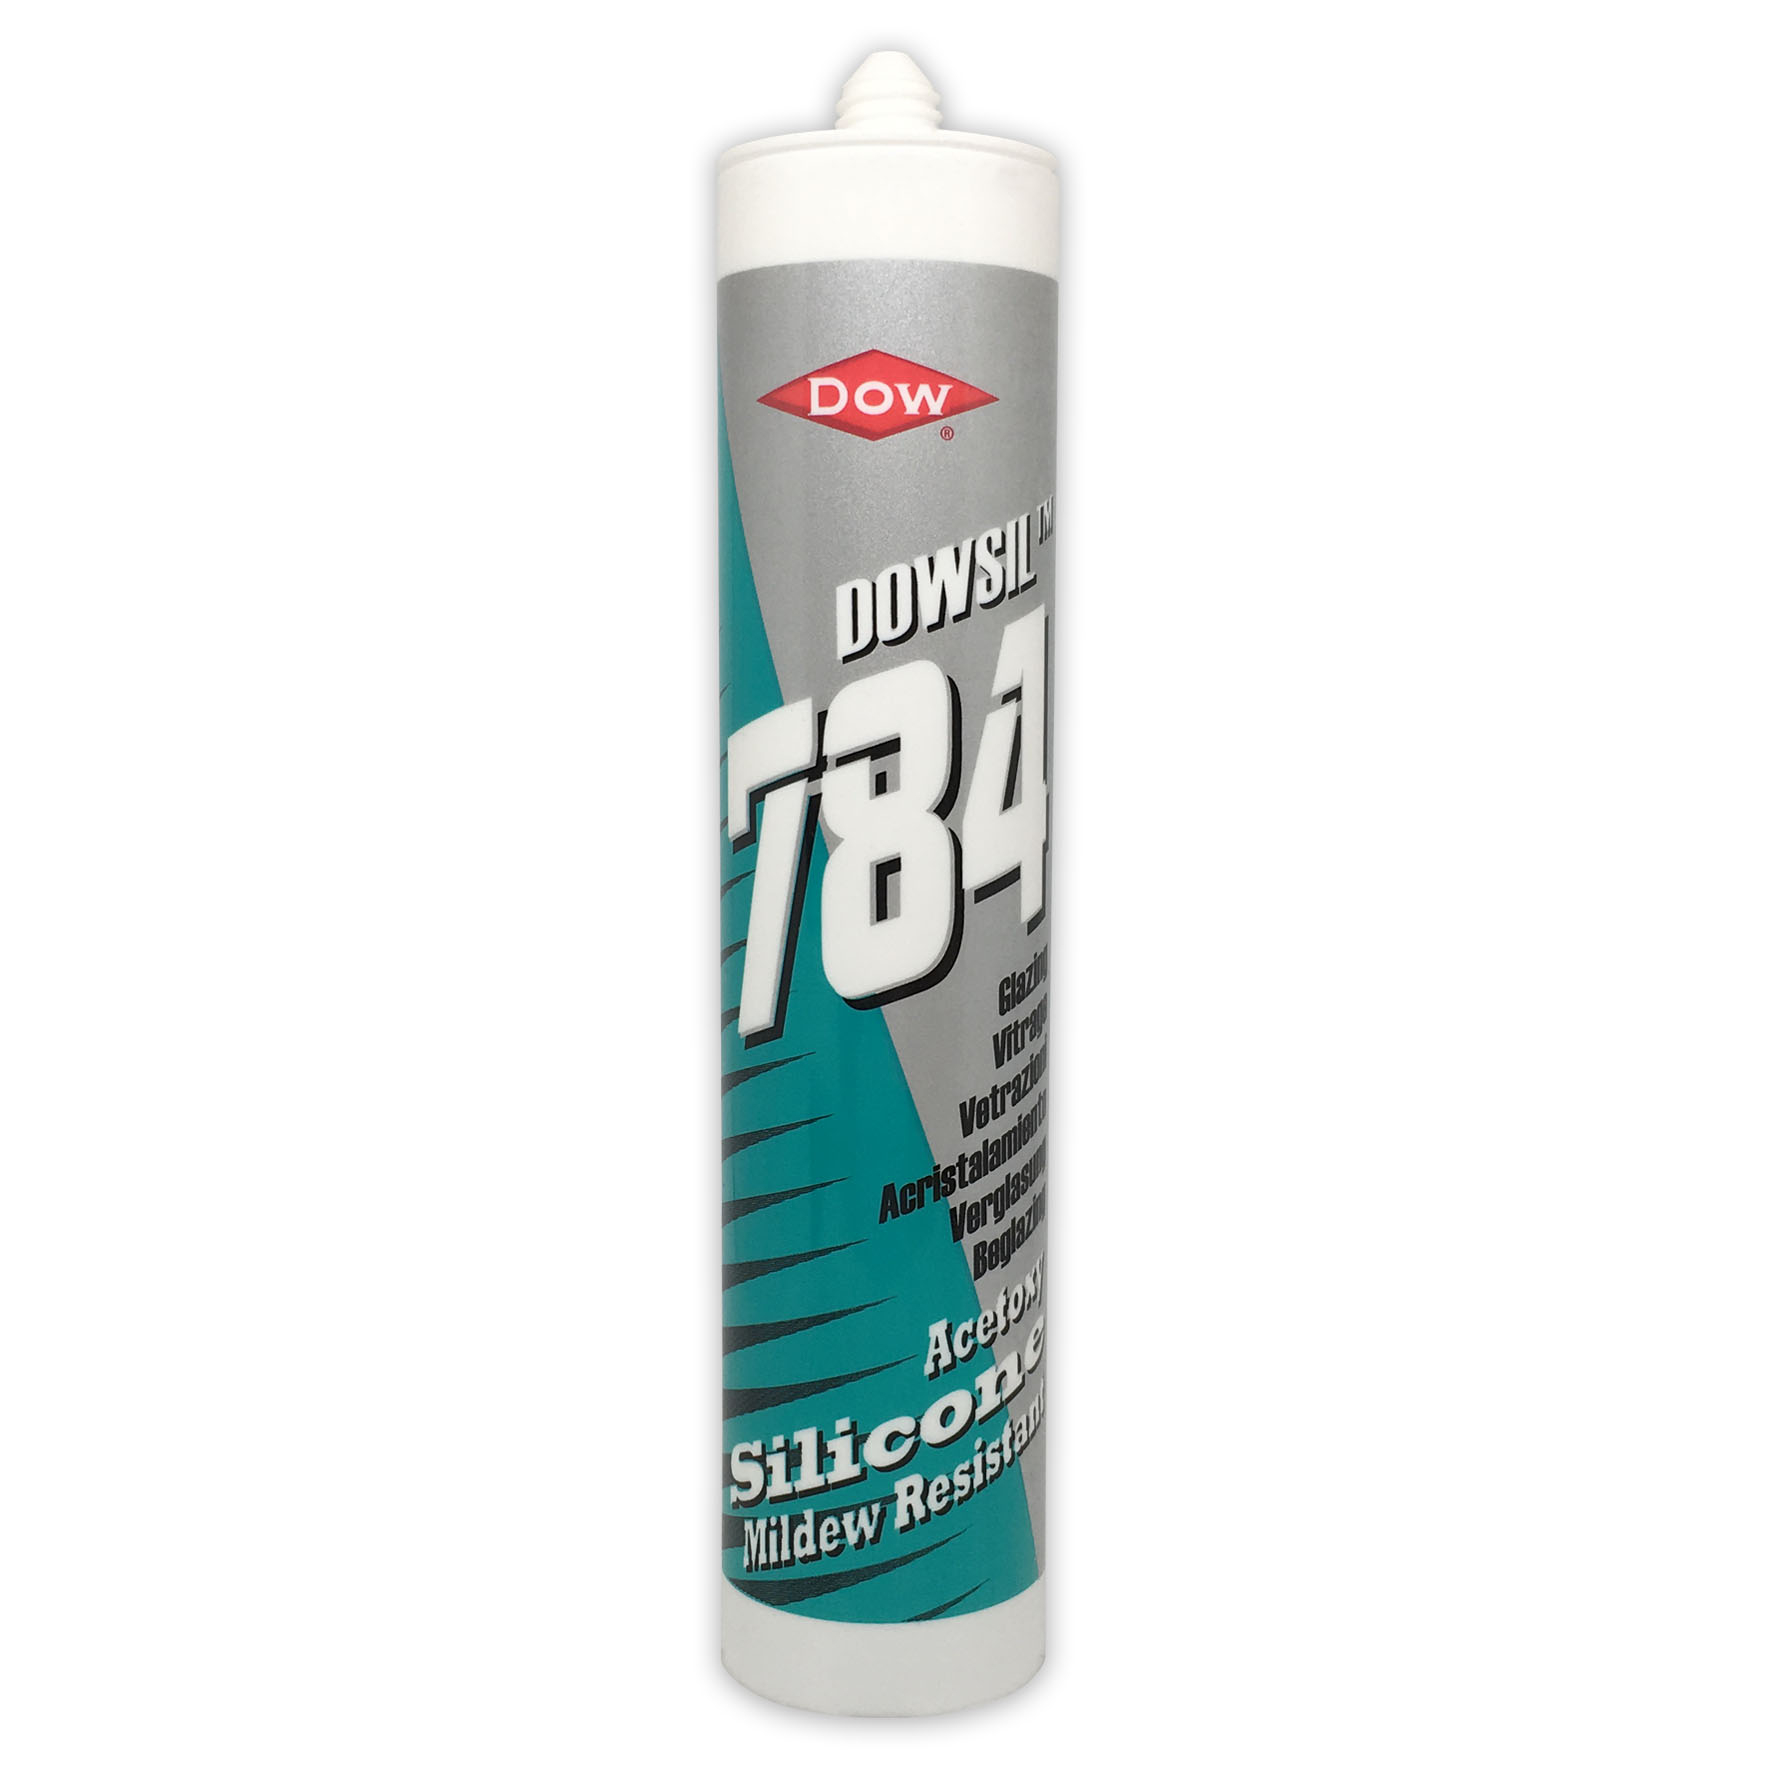 Dowsil 784 Fast Curing Glazing Silicone